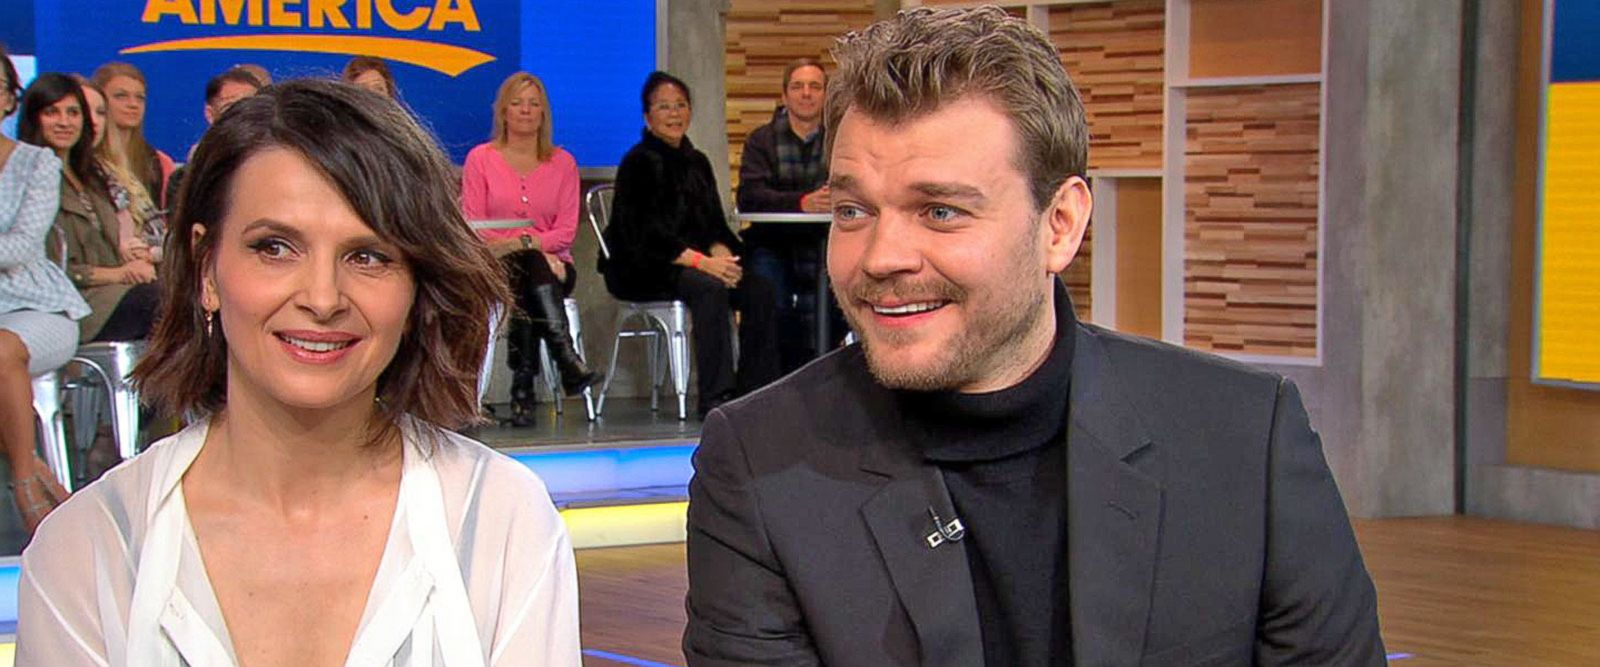 VIDEO: Pilou Asbaek and Juliette Binoche dish on 'Ghost in the Shell'